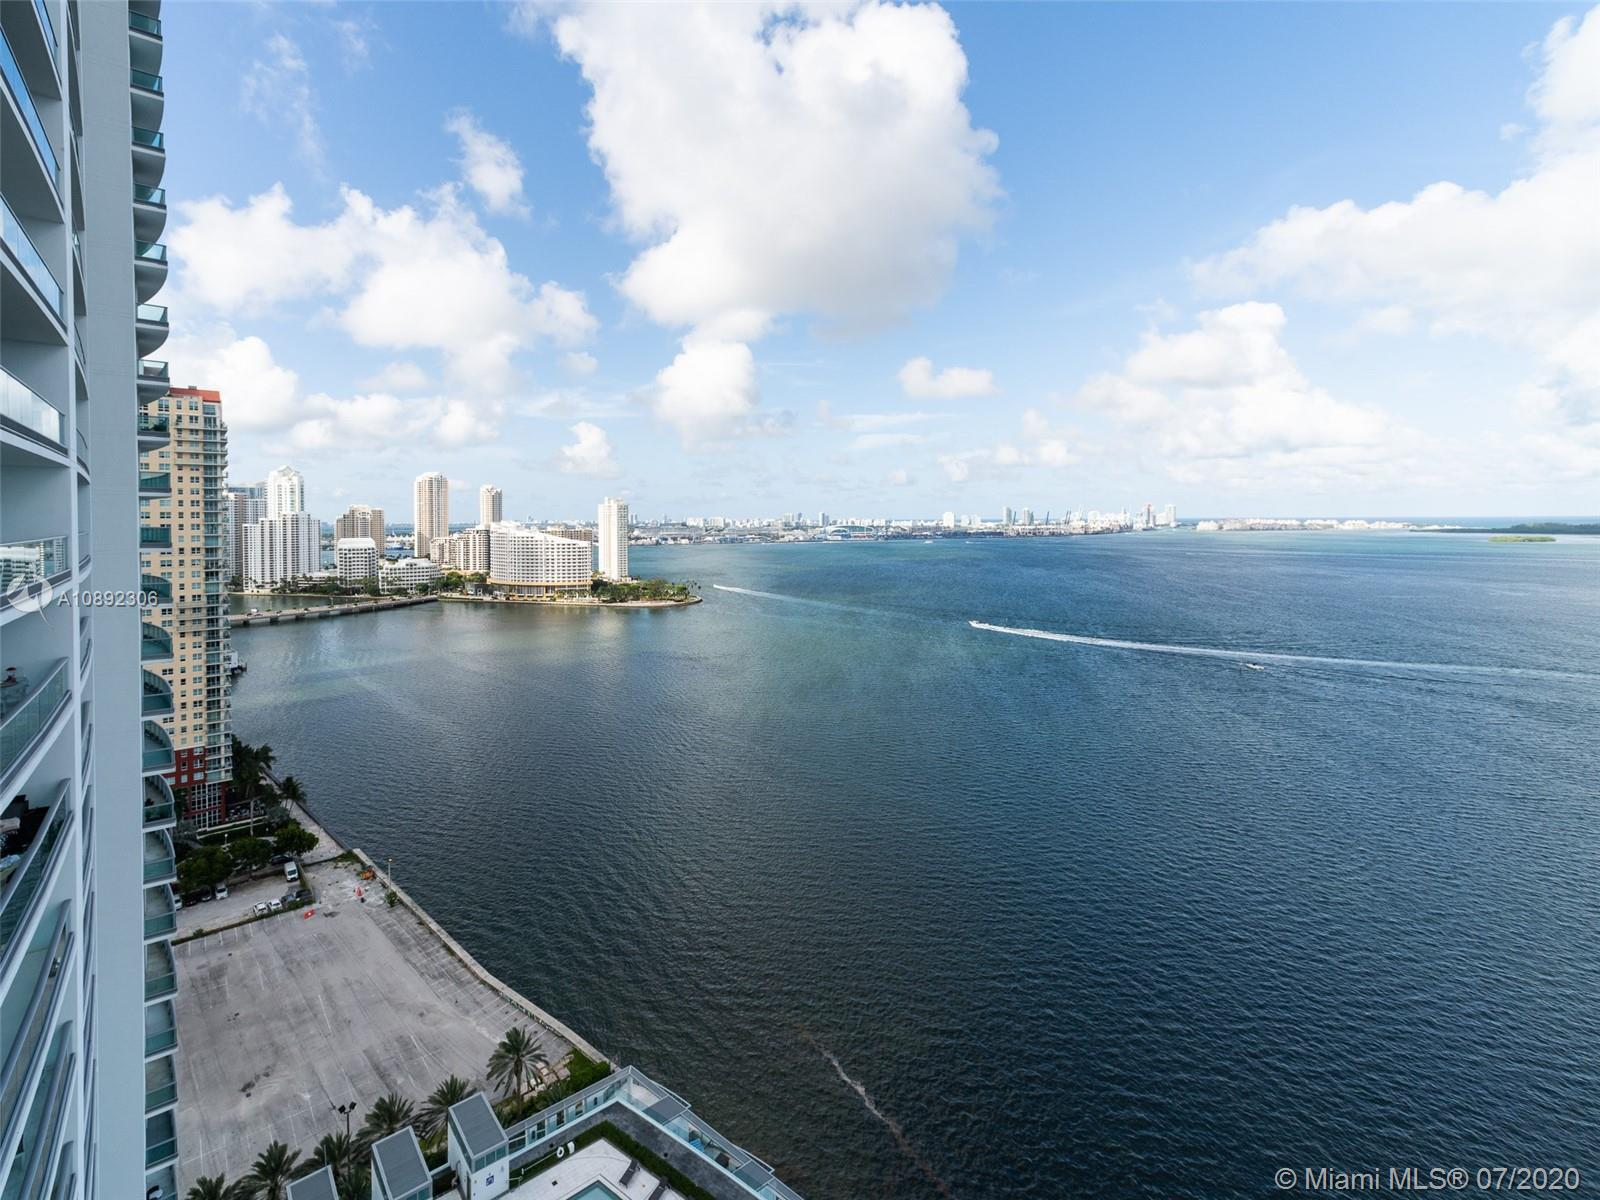 Unrivaled water views from this high floor corner unit in the Jade Brickell. This is the best line in the building and the view from this unit clears all of the lower Brickell Bay Drive neighboring buildings. Enjoy unobstructed views of the Ocean, Biscayne Bay, Key Biscayne, Fisher Island and South Beach from the sprawling balcony. Private elevator with stunning entry to the unit. High end remote operated black out shades throughout this smart home with customized voice controlled lighting.Top of the line kitchen with high end applicances and cabinetry. Gorgeous remodeled lobby and high end amenities including 5 star gym and spa, infinity pool and more.  Property is vacant and easy to show. Only 2/2.5 Unit available in this coveted line. Must see!!